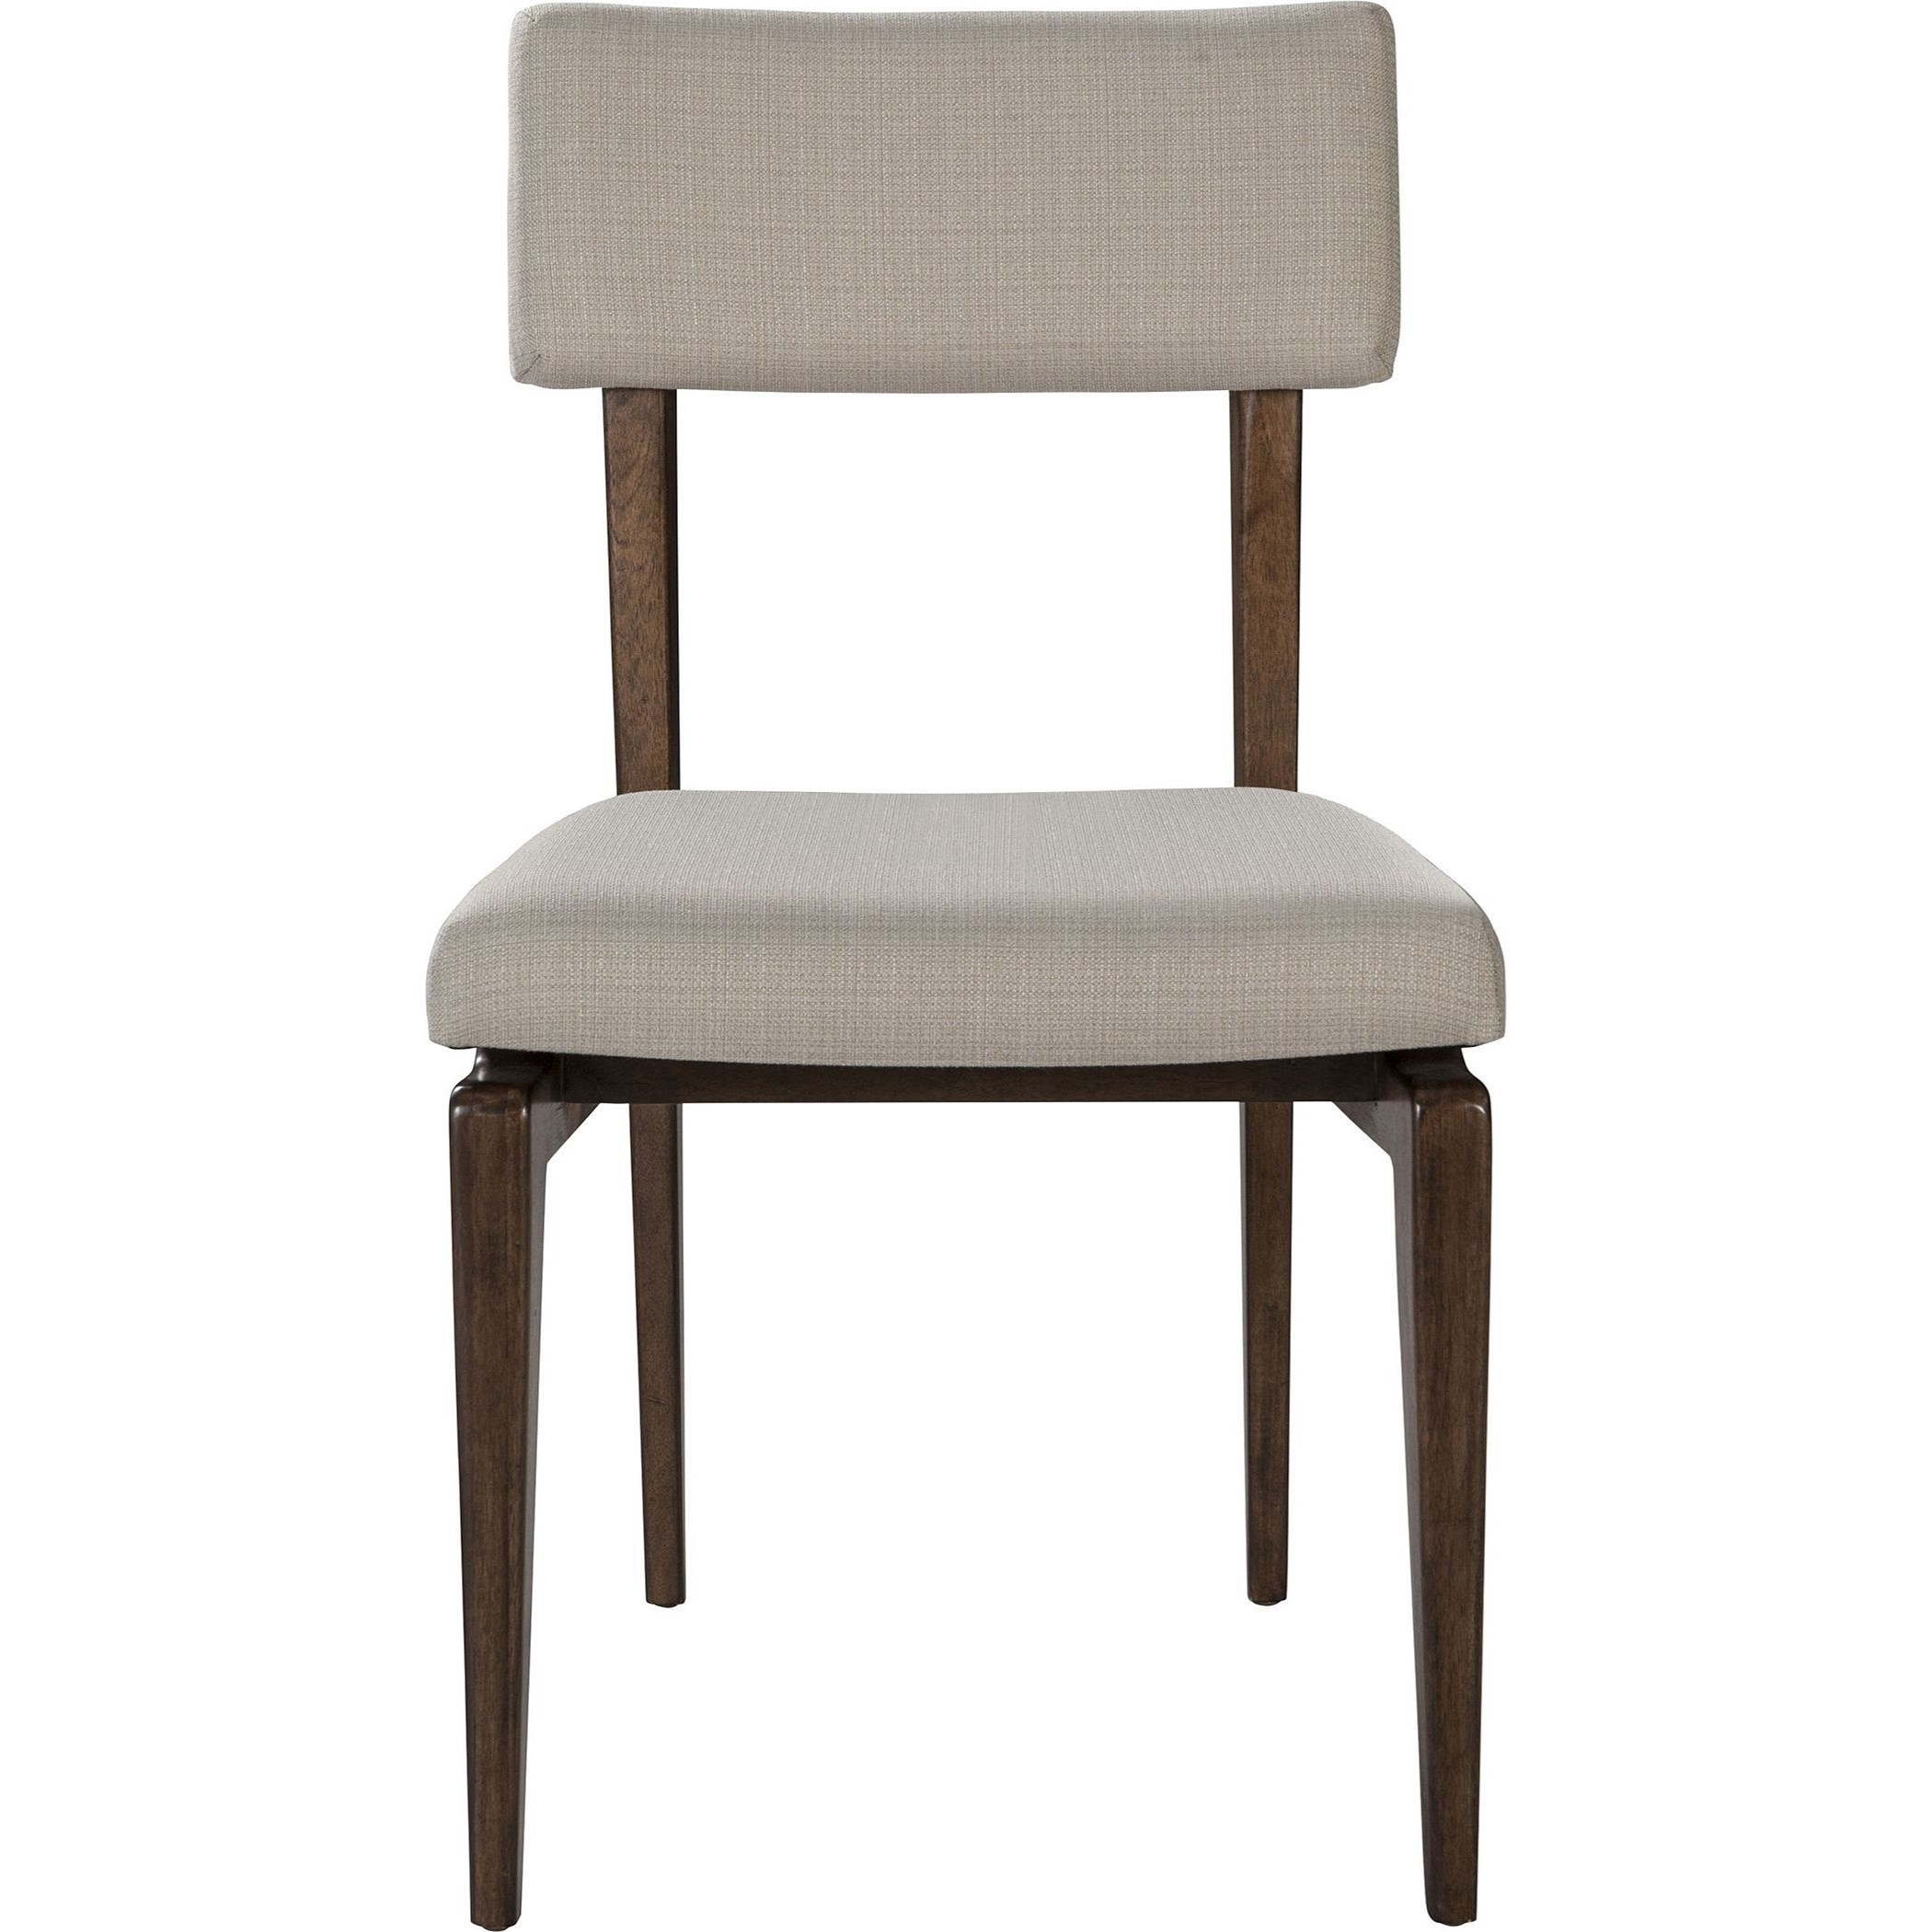 ED Ellen DeGeneres Crafted by Thomasville   Sena Dining Side Chair - Item Number: 85821-871